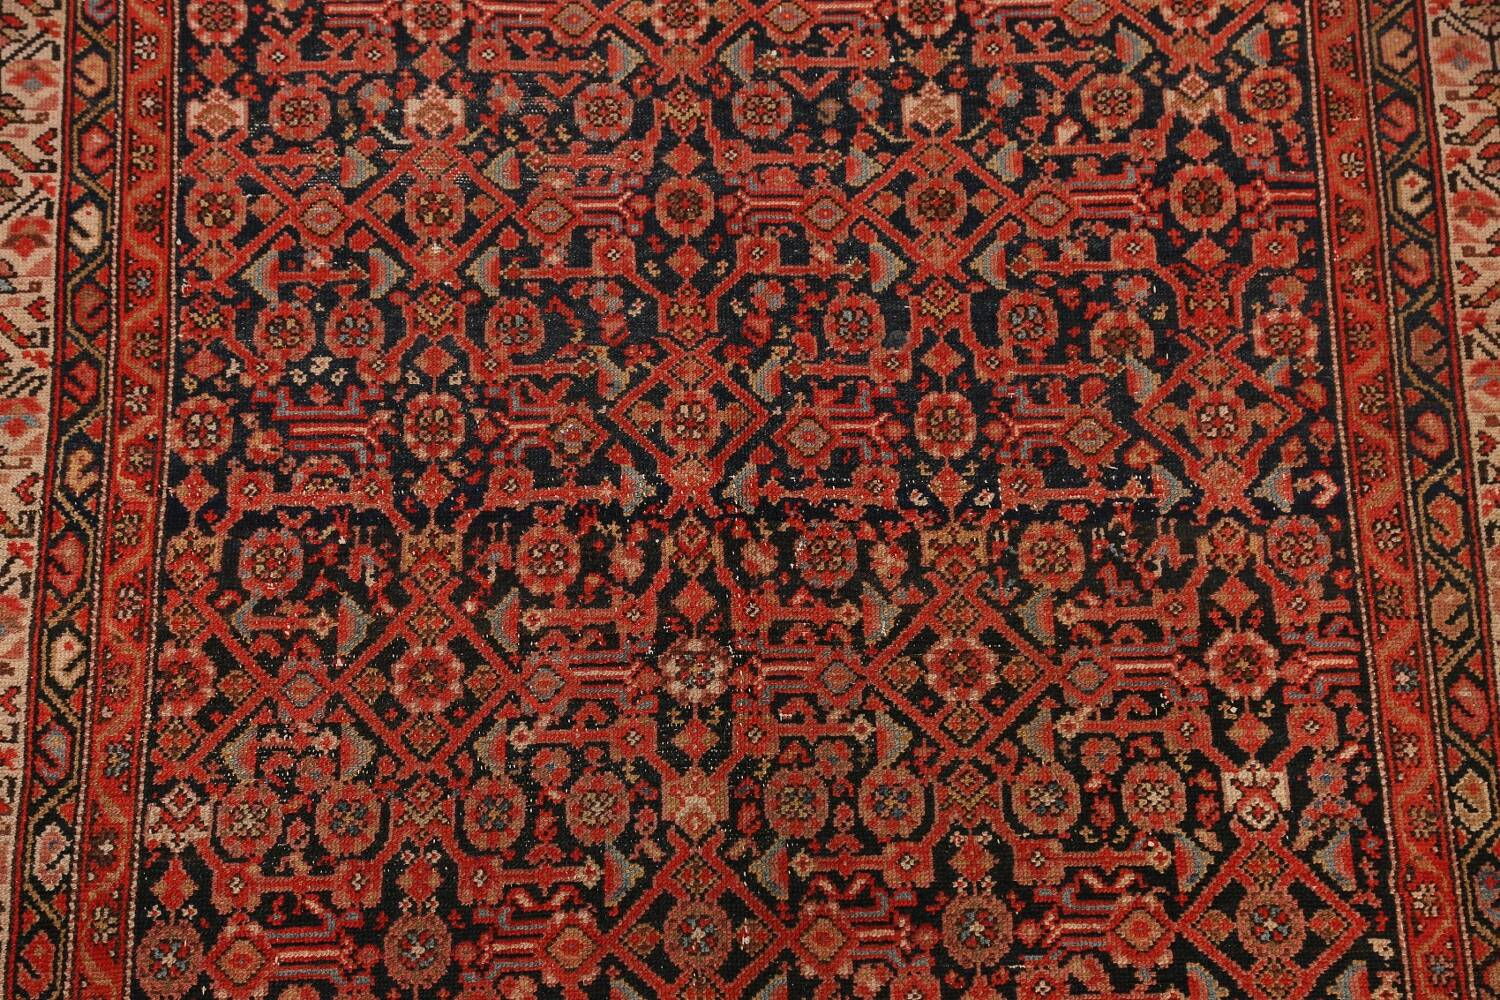 Pre-1900 Antique Malayer Vegetable Dye Persian Area Rug 5x7 image 4